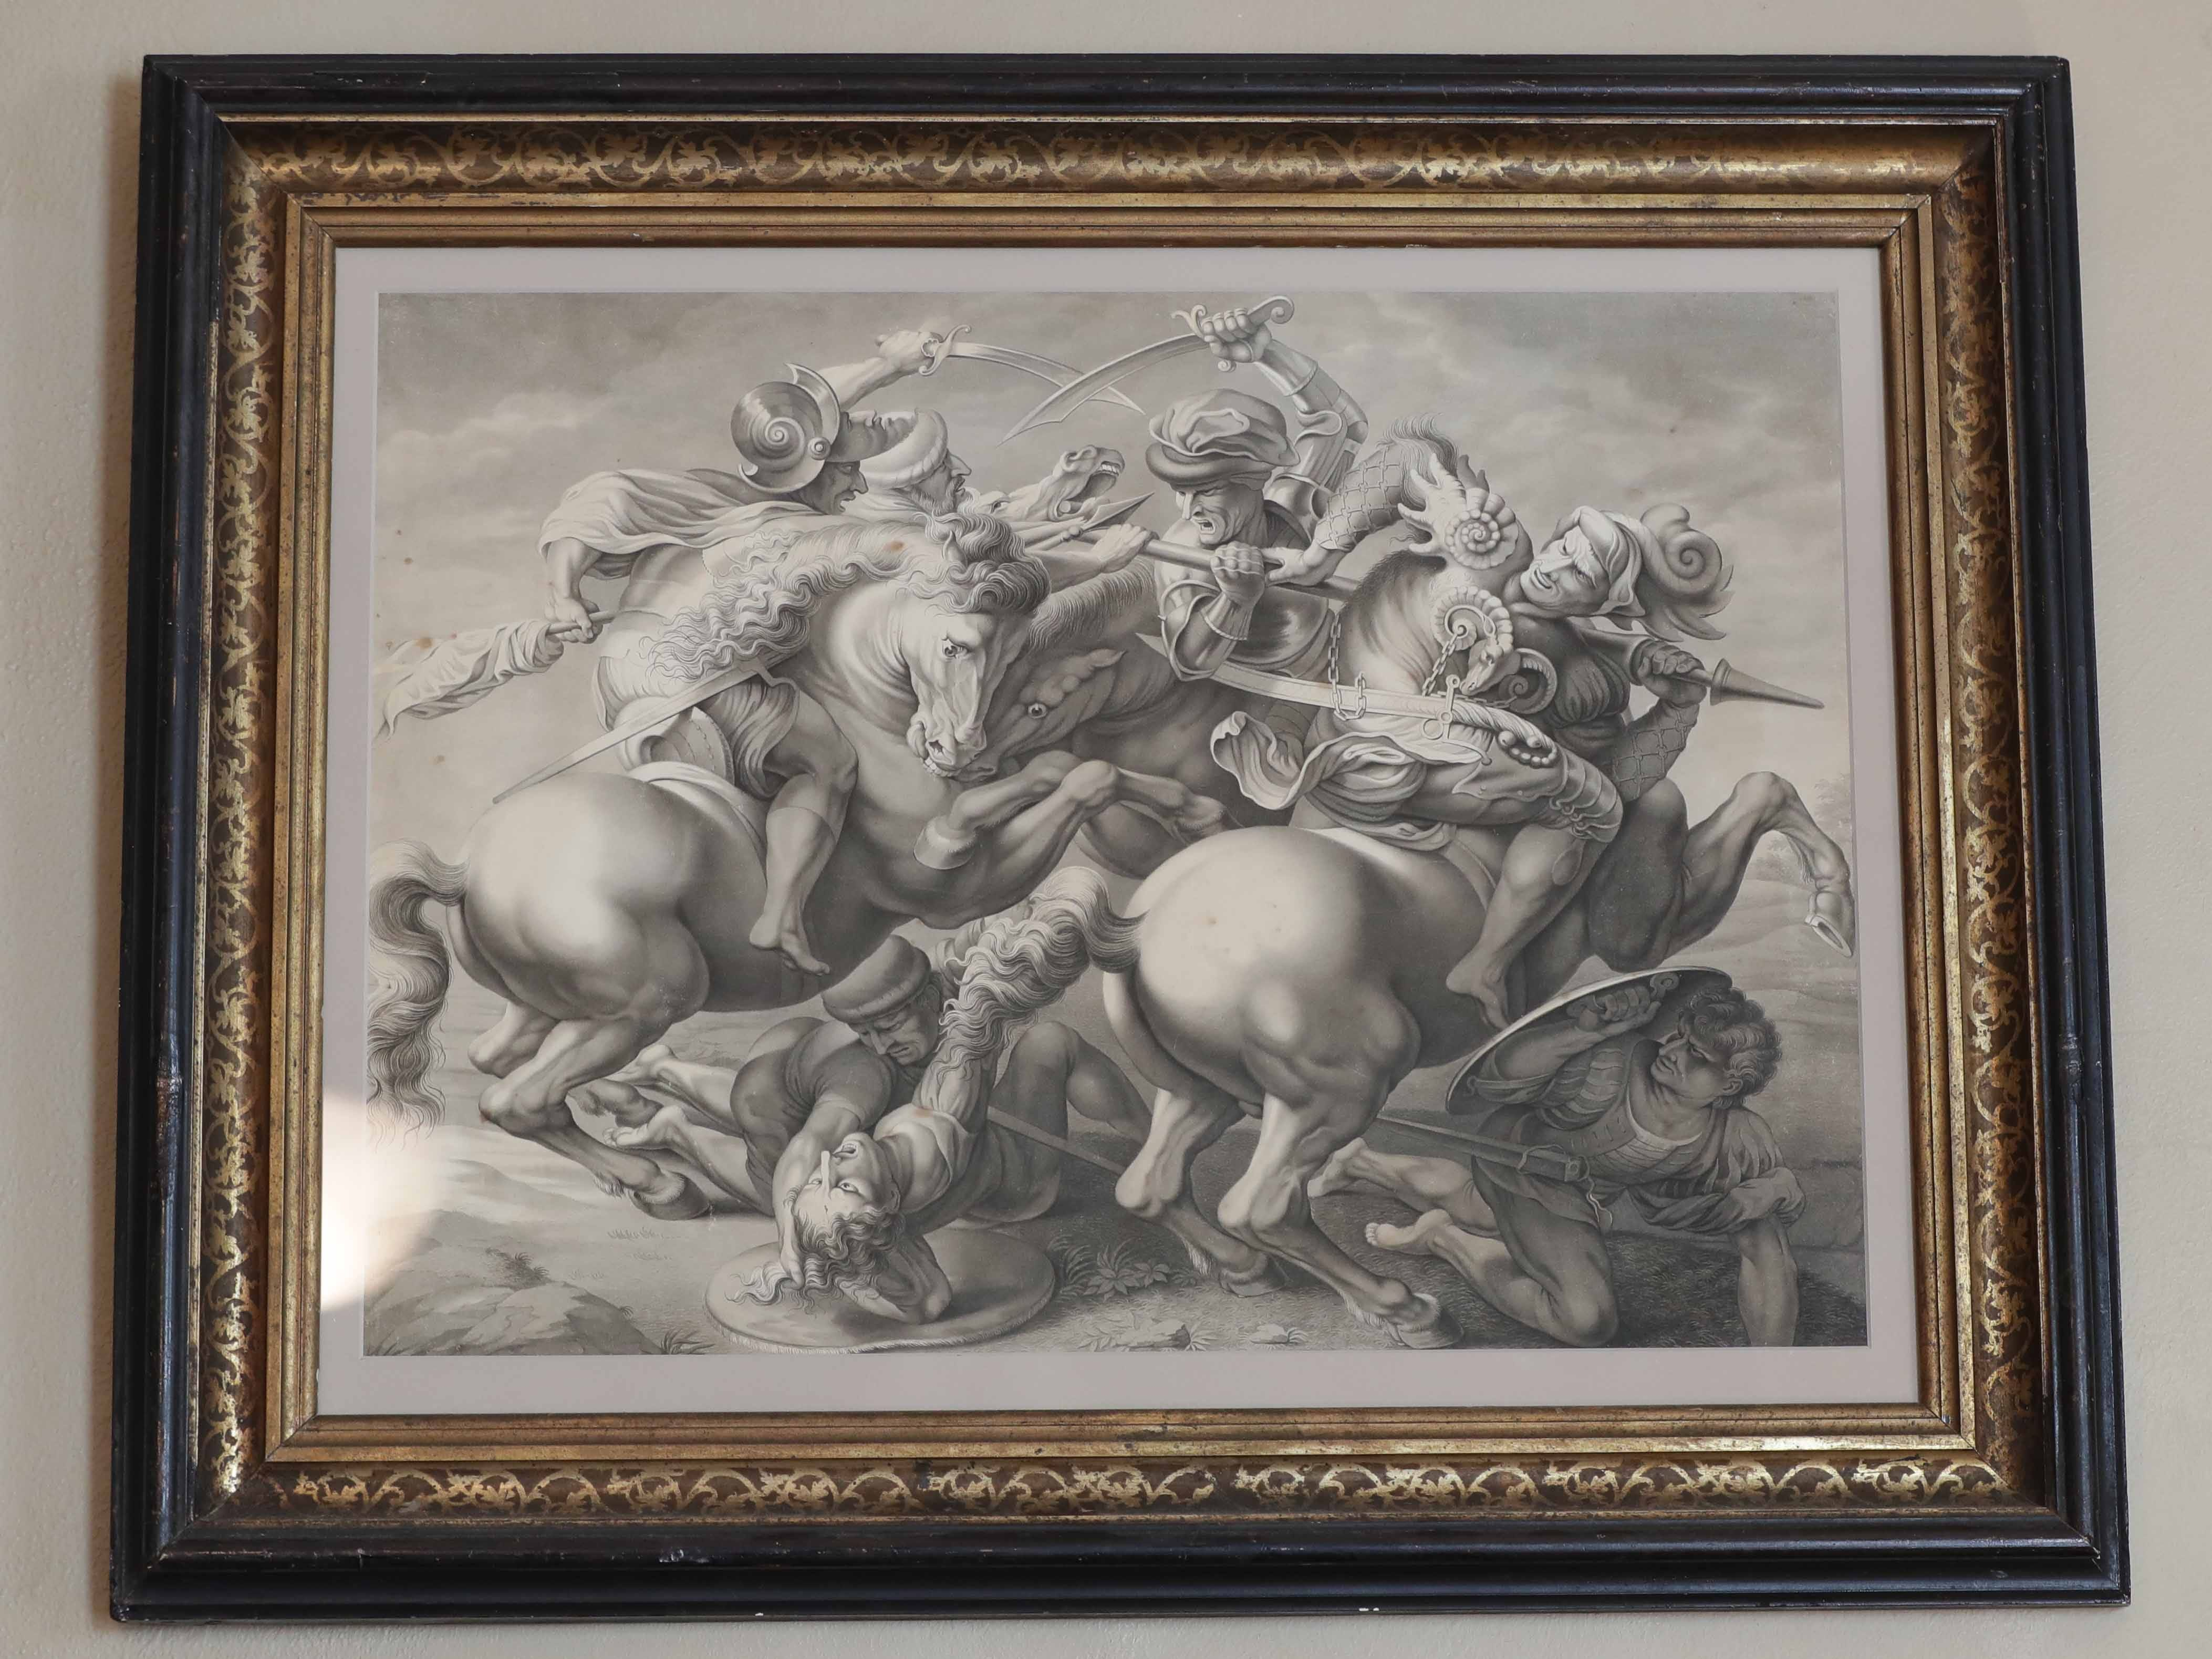 at home berube - A framed ink drawing, a copy of part of a famous mural by Leonardo da Vinci, is one of owner Gene Berube's favorite pieces.